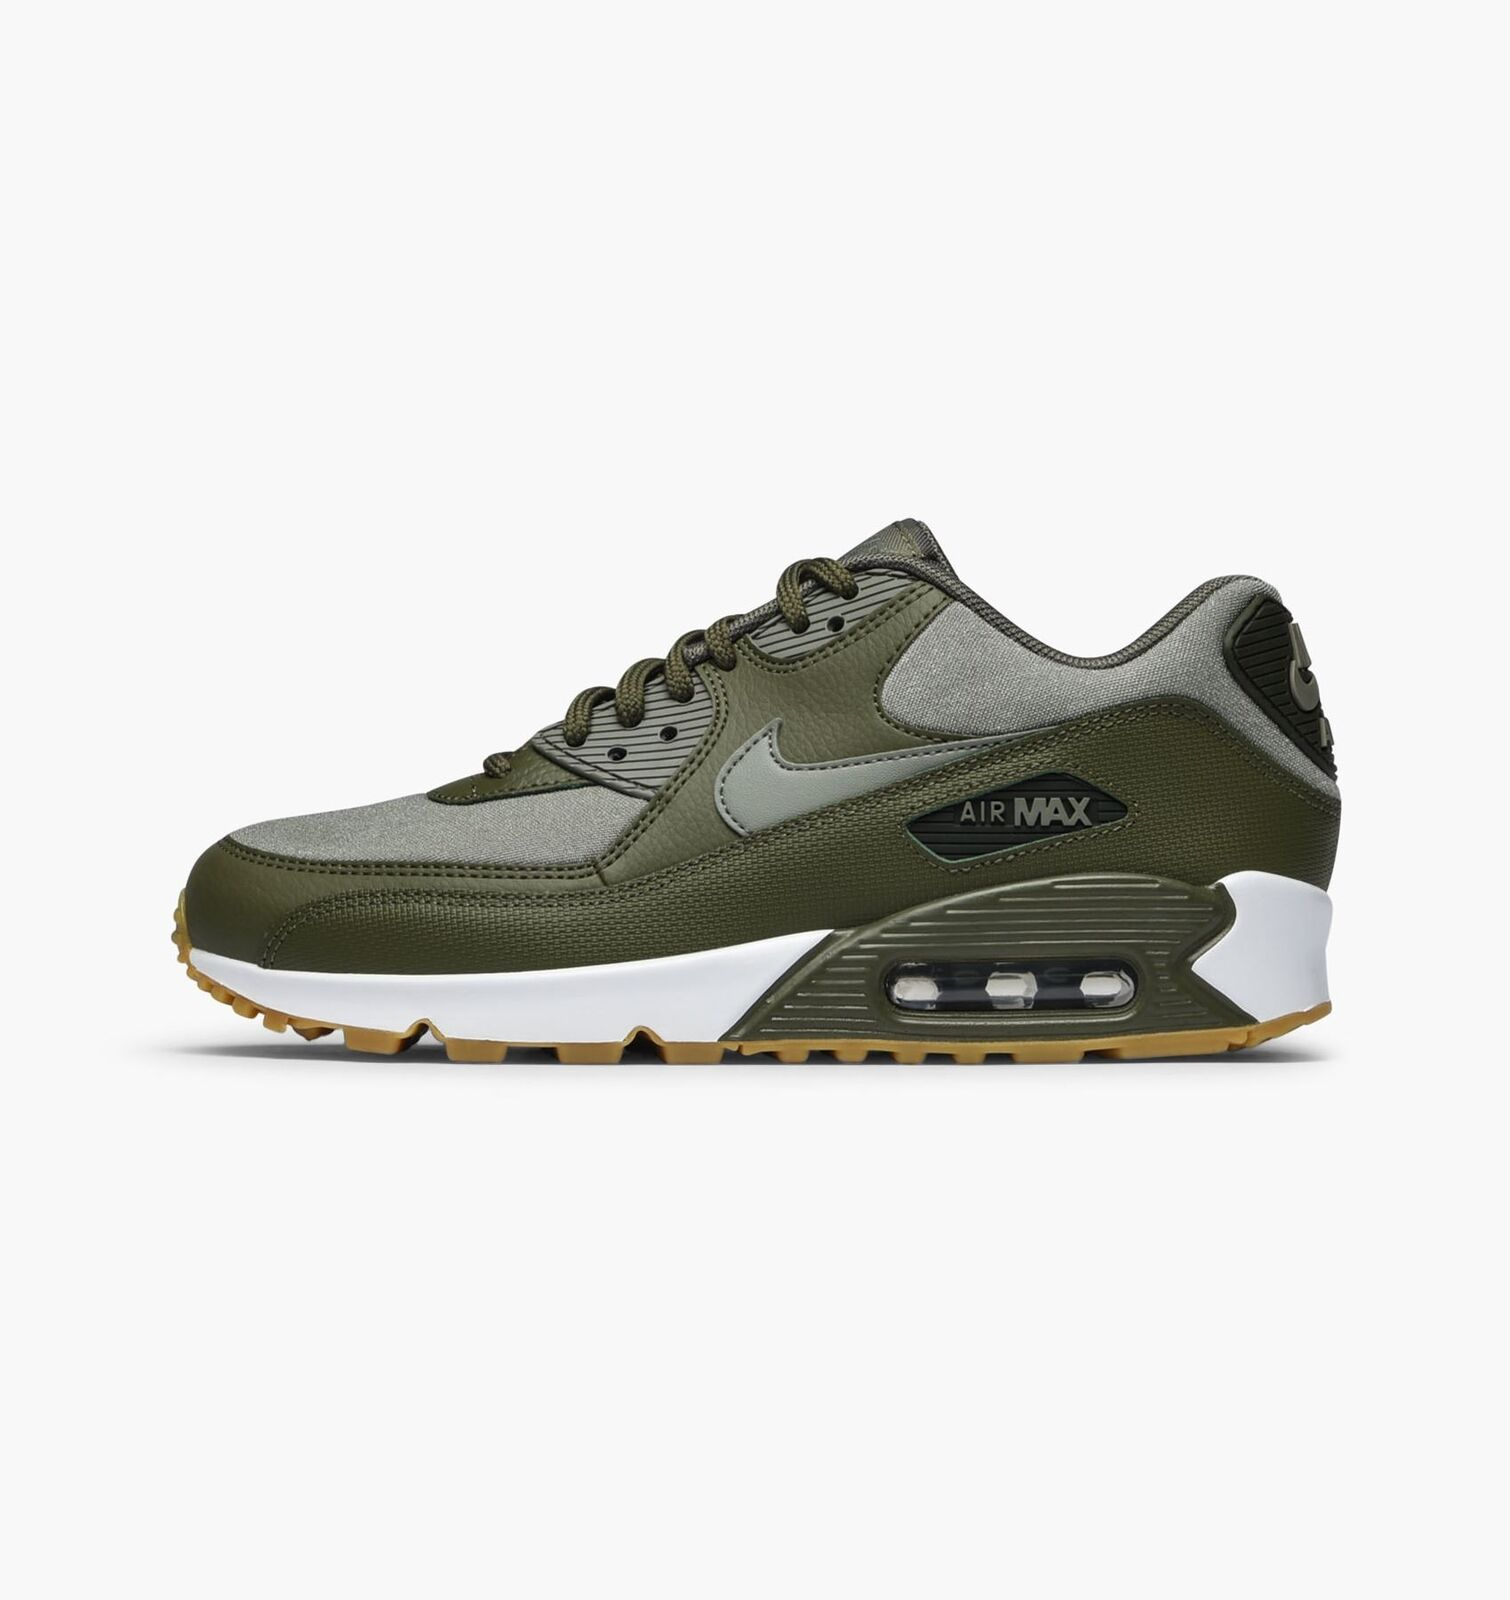 Nike femmes Air Max 90 Medium Olive Trainers Trainers Trainers 325213 205 Taille 4 UK d52588